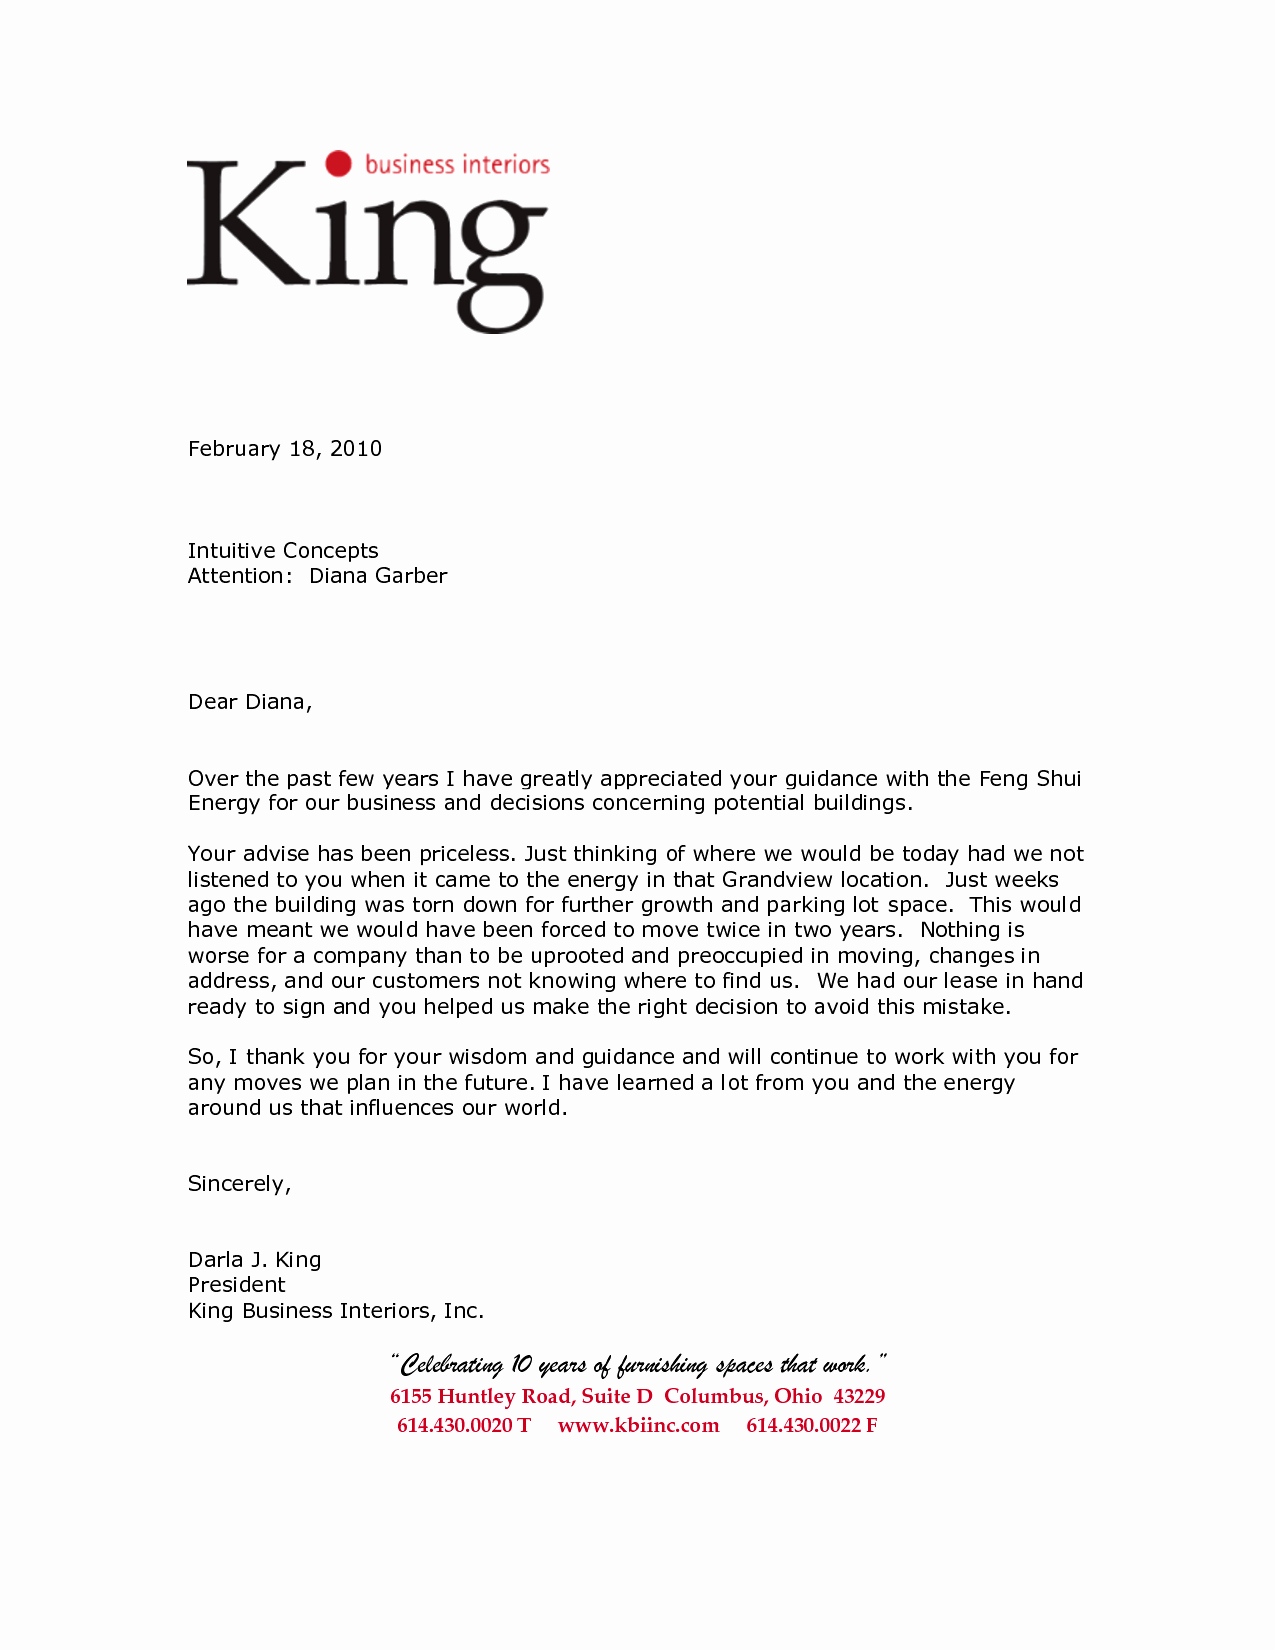 Business Letter format Microsoft Word Luxury Business Reference Letter Template Mughals